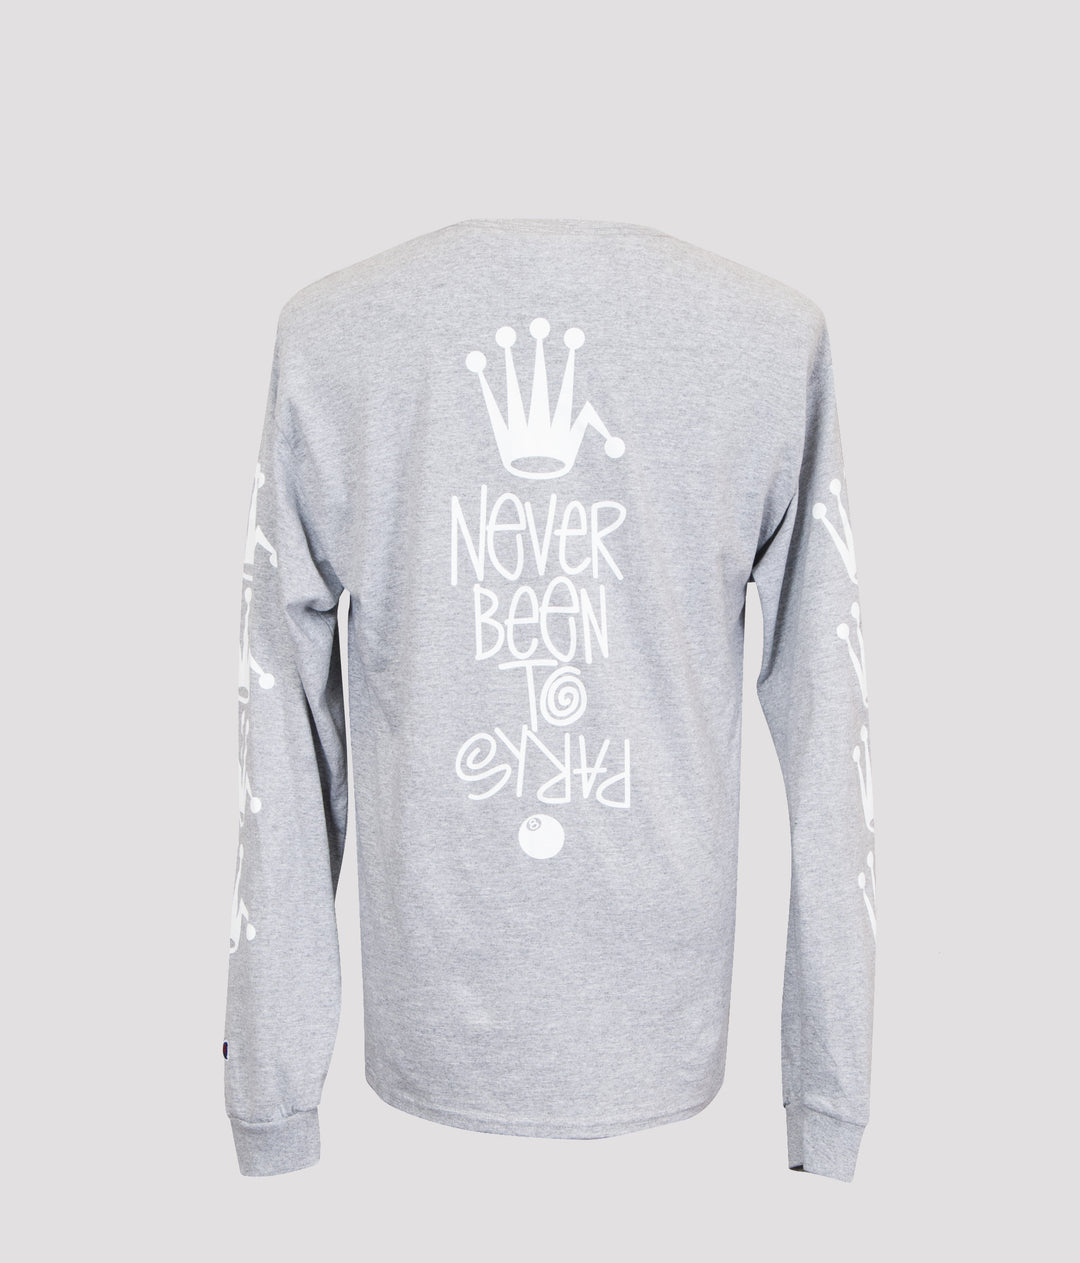 NEVER BEEN TO PARIS Longsleeve t-shirt